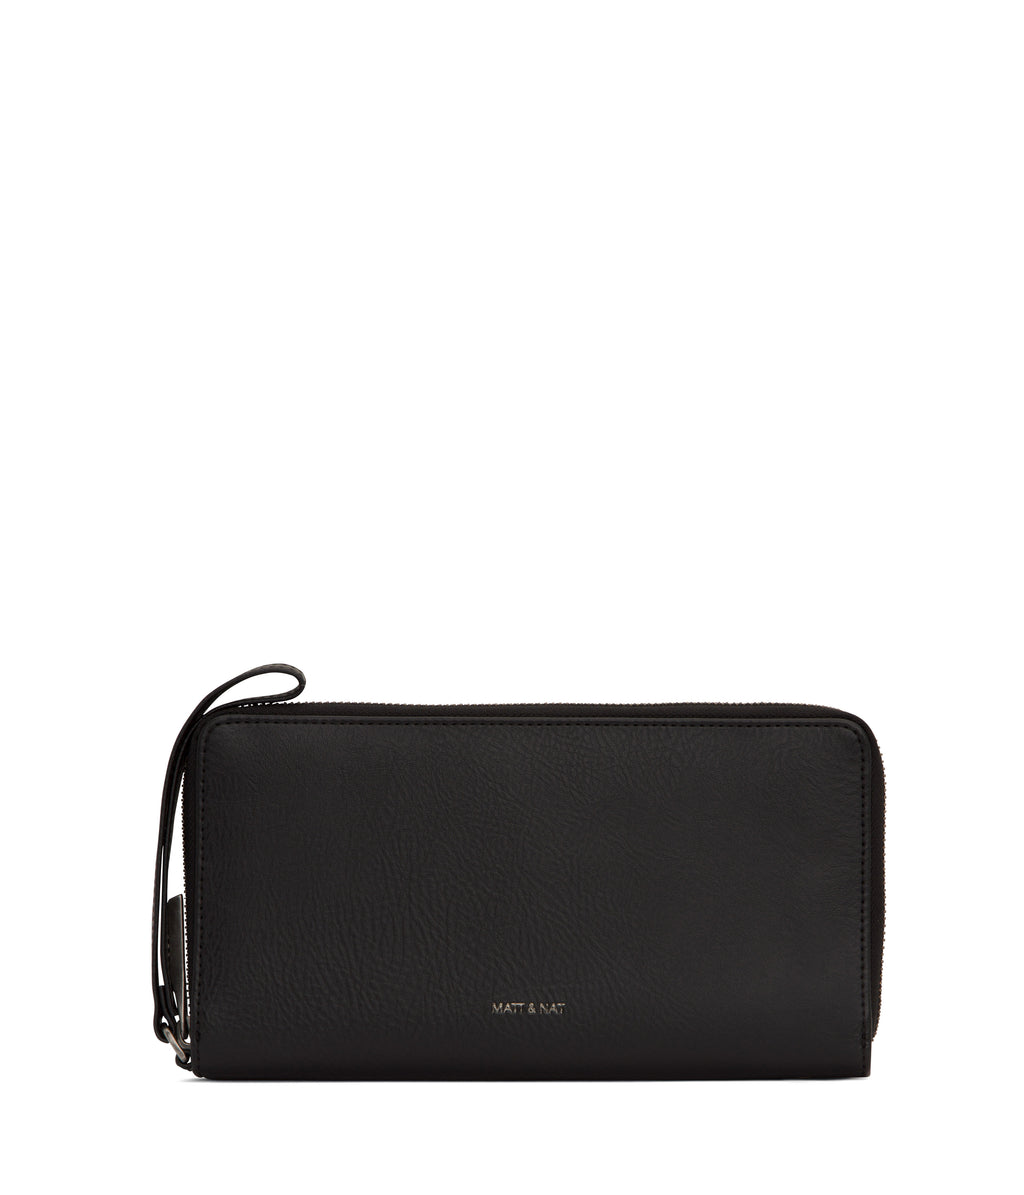 Matt & Nat Skyler Travel Wallet